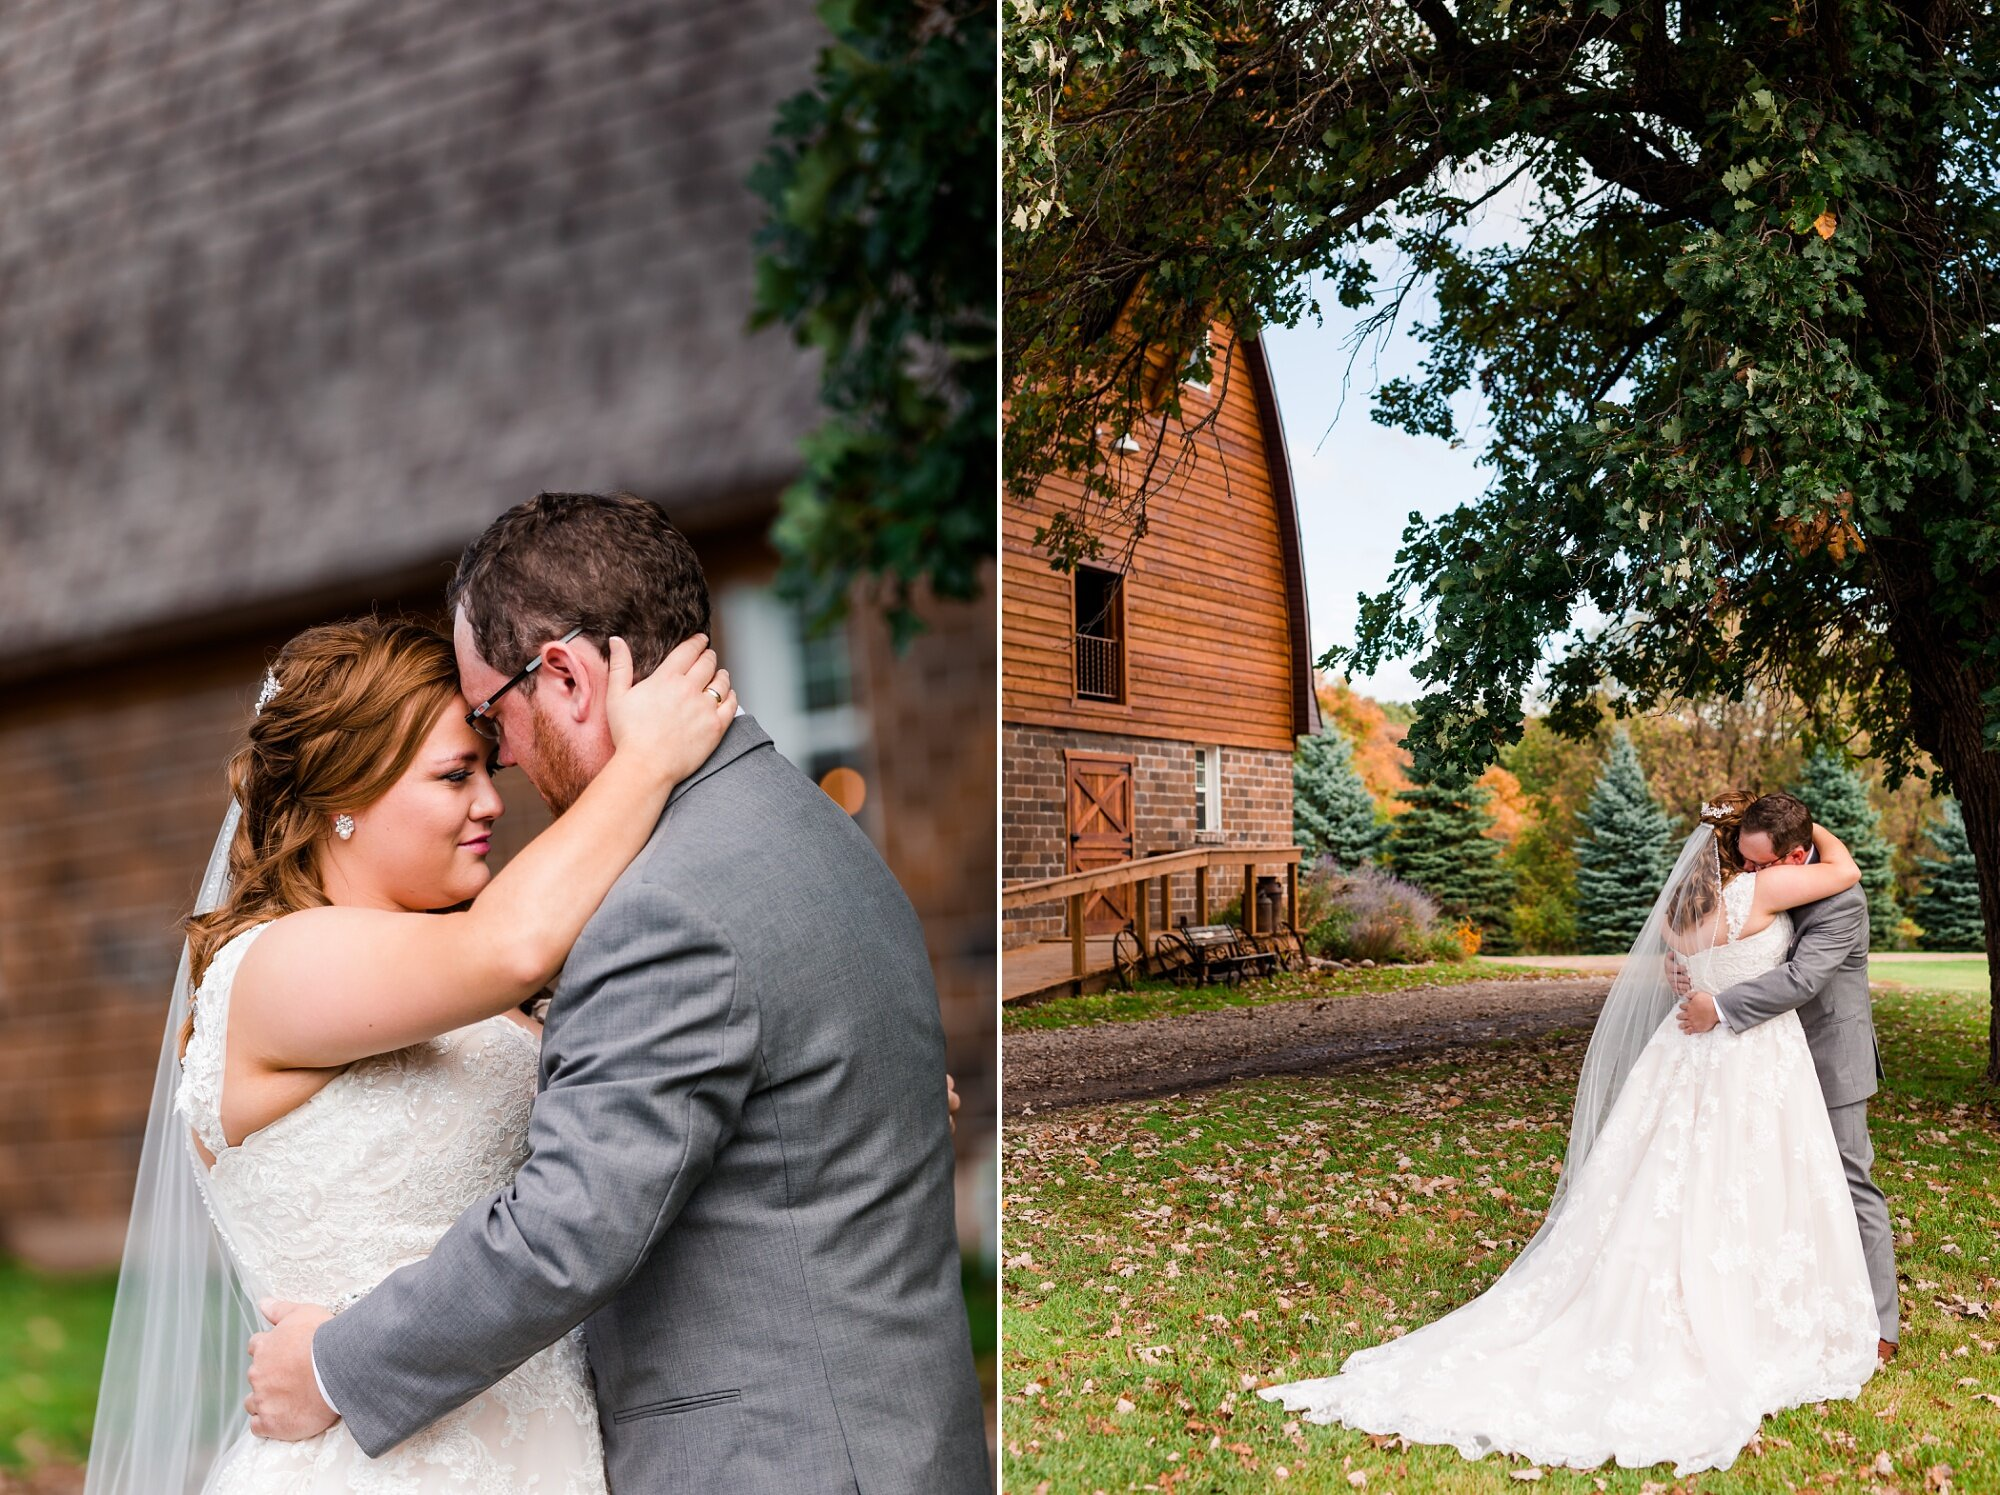 Amber Langerud Photography_Lake Park Minnesota, Outdoor Barn Wedding With Horses_6955.jpg